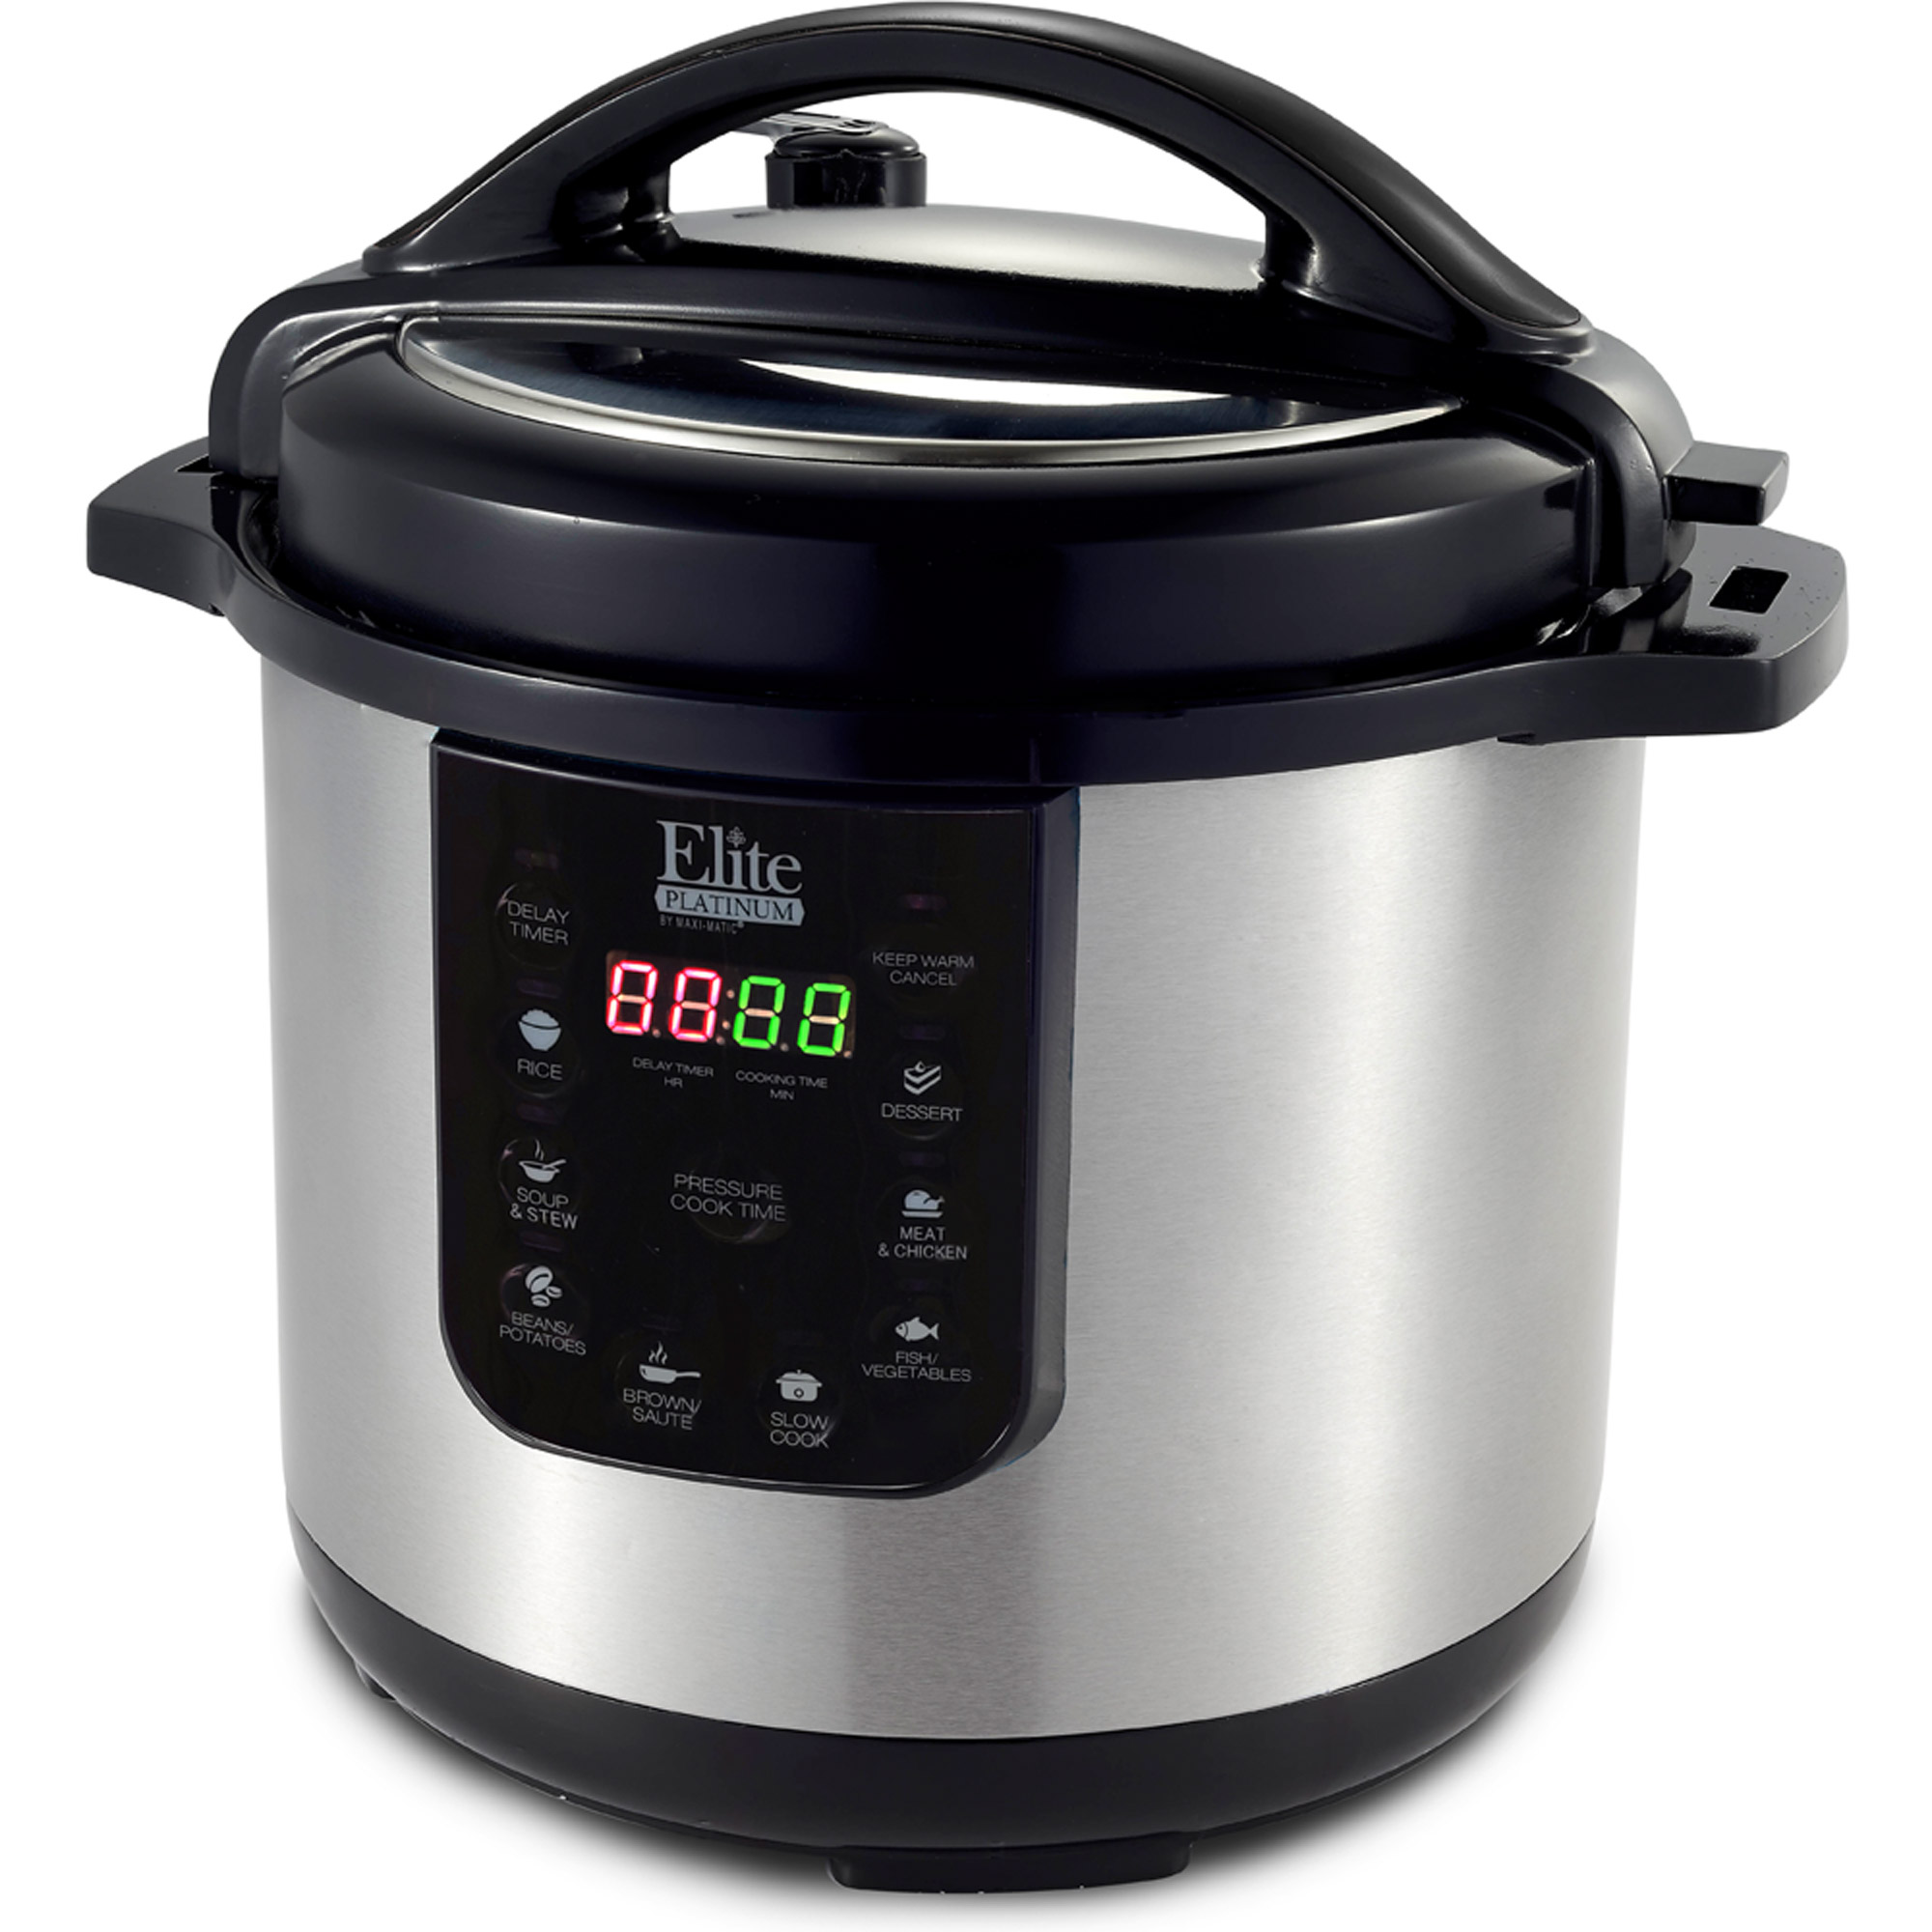 Elite Platinum EPC-813 8 qt Electric Stainless Steel Pressure Cooker, Black